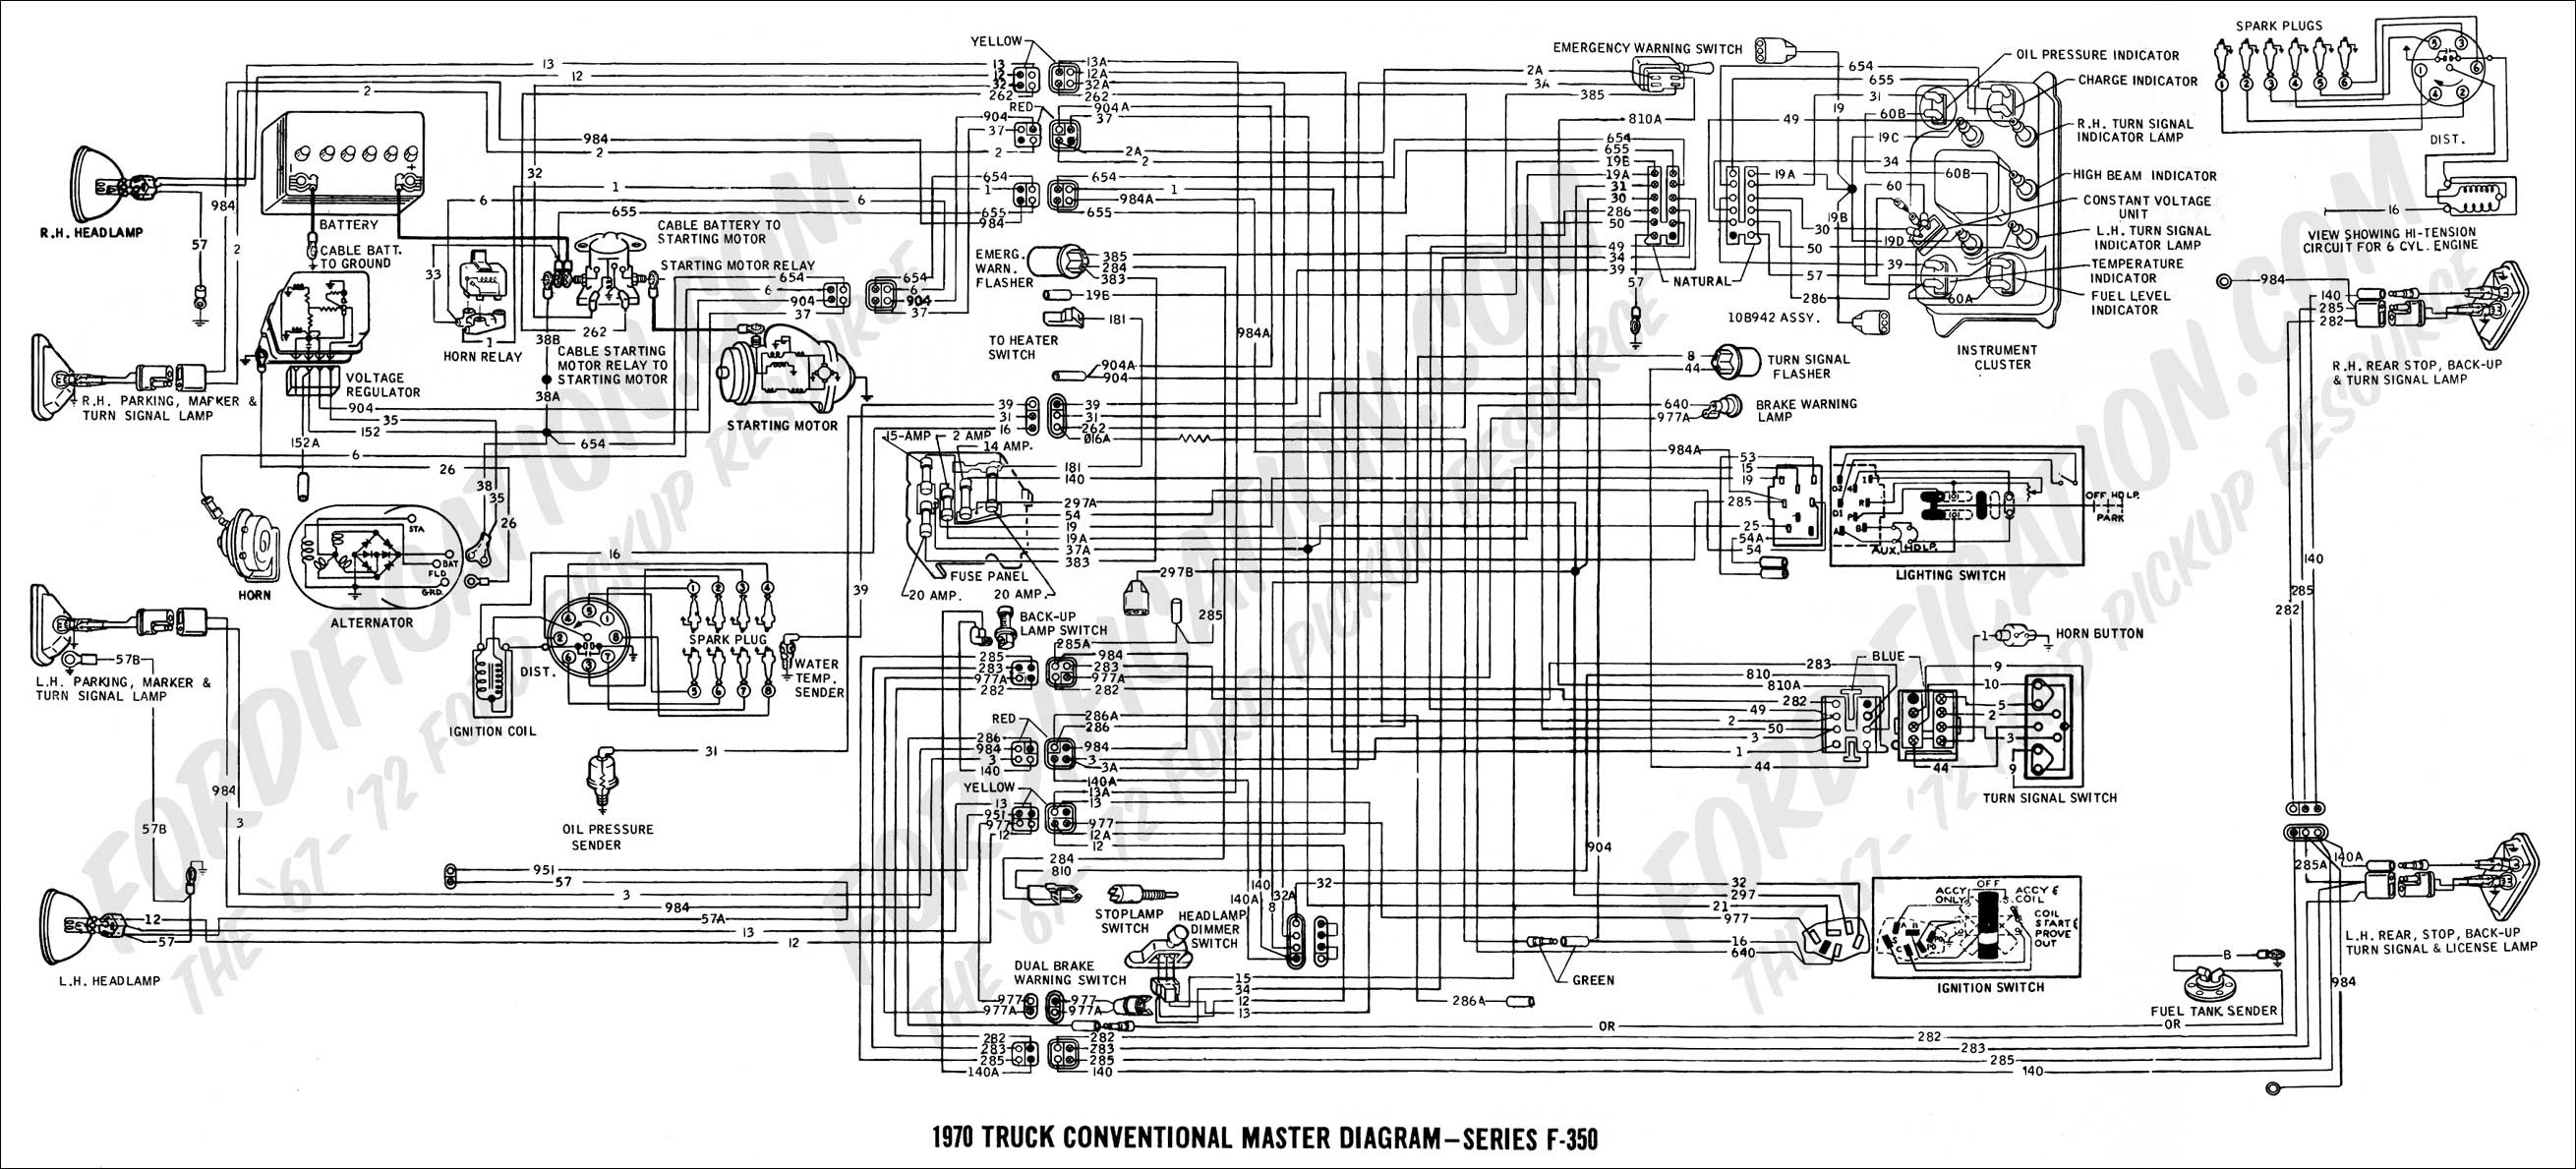 Ford F250 Engine Diagram Diagram as Well ford F 350 Wiring Diagram In Addition ford Headlight Of Ford F250 Engine Diagram